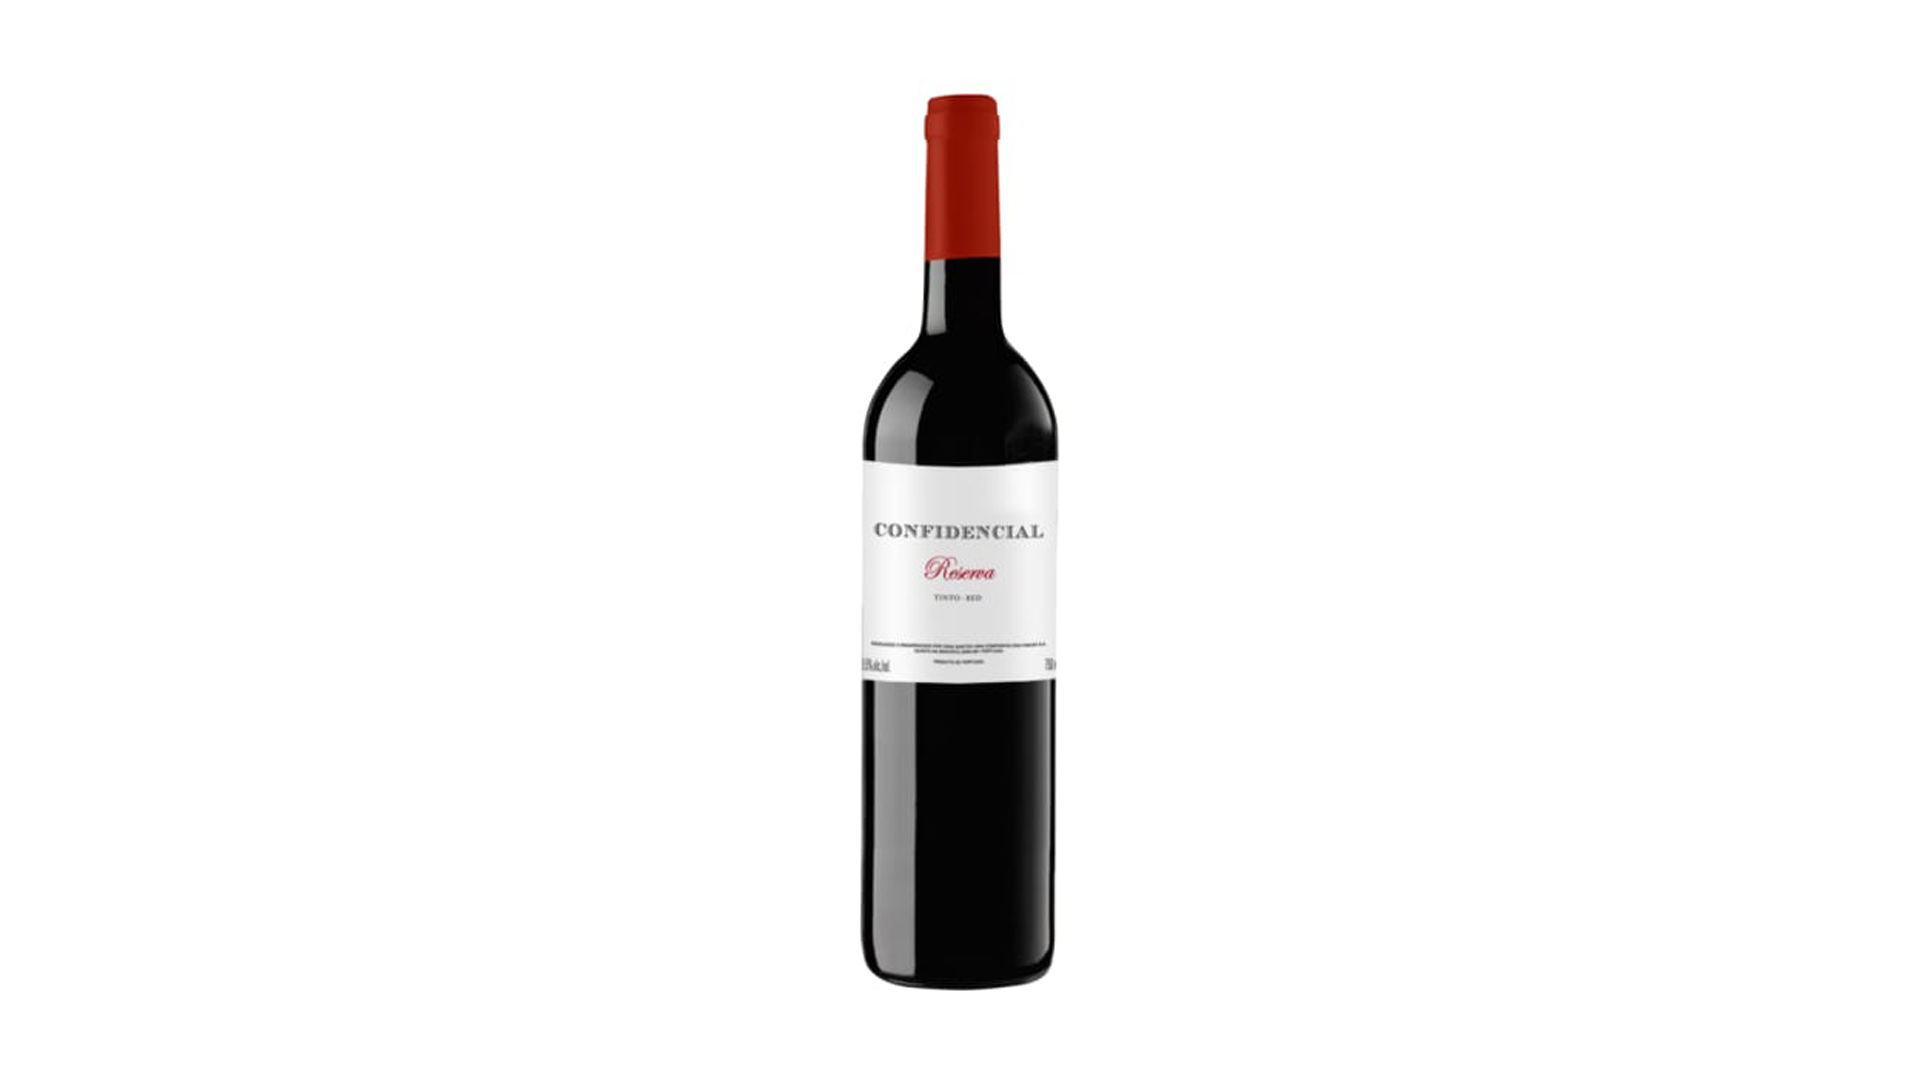 Casa Santos Lima Confidencial Reserve Red 2014 is one of 5 delightful wines special offers